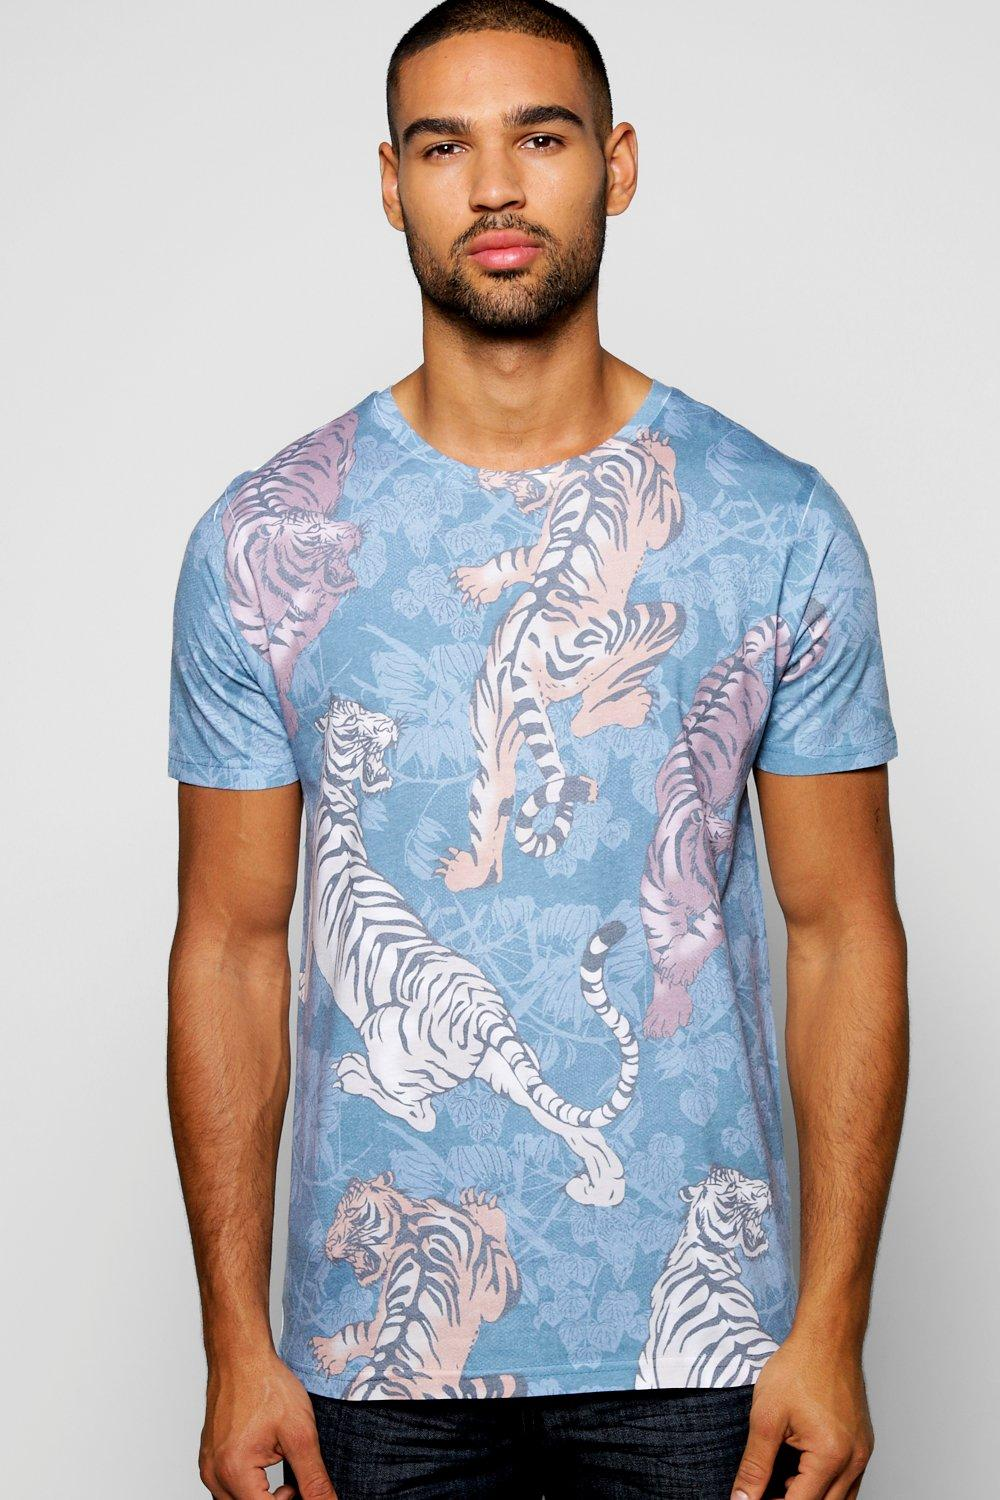 Oriental Tiger Sublimation T Shirt